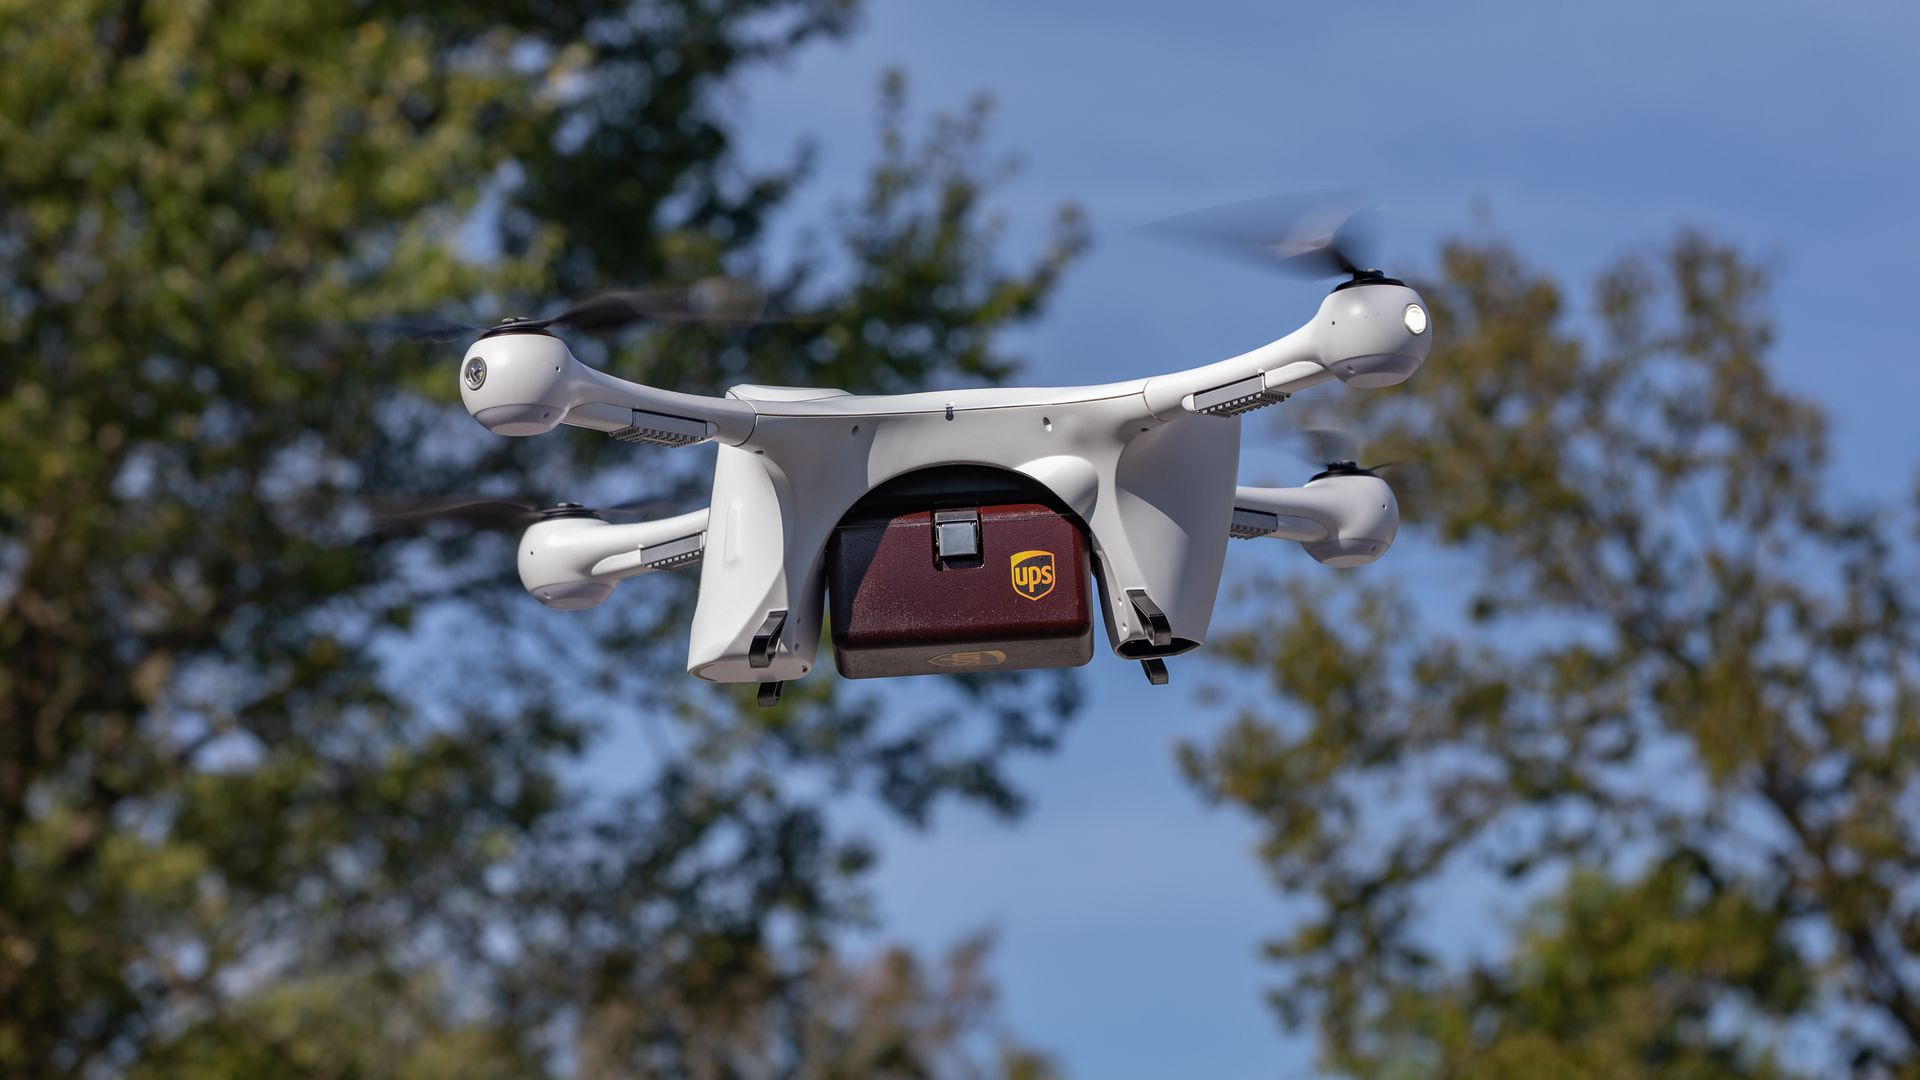 Image of a drone carrying a small UPS package